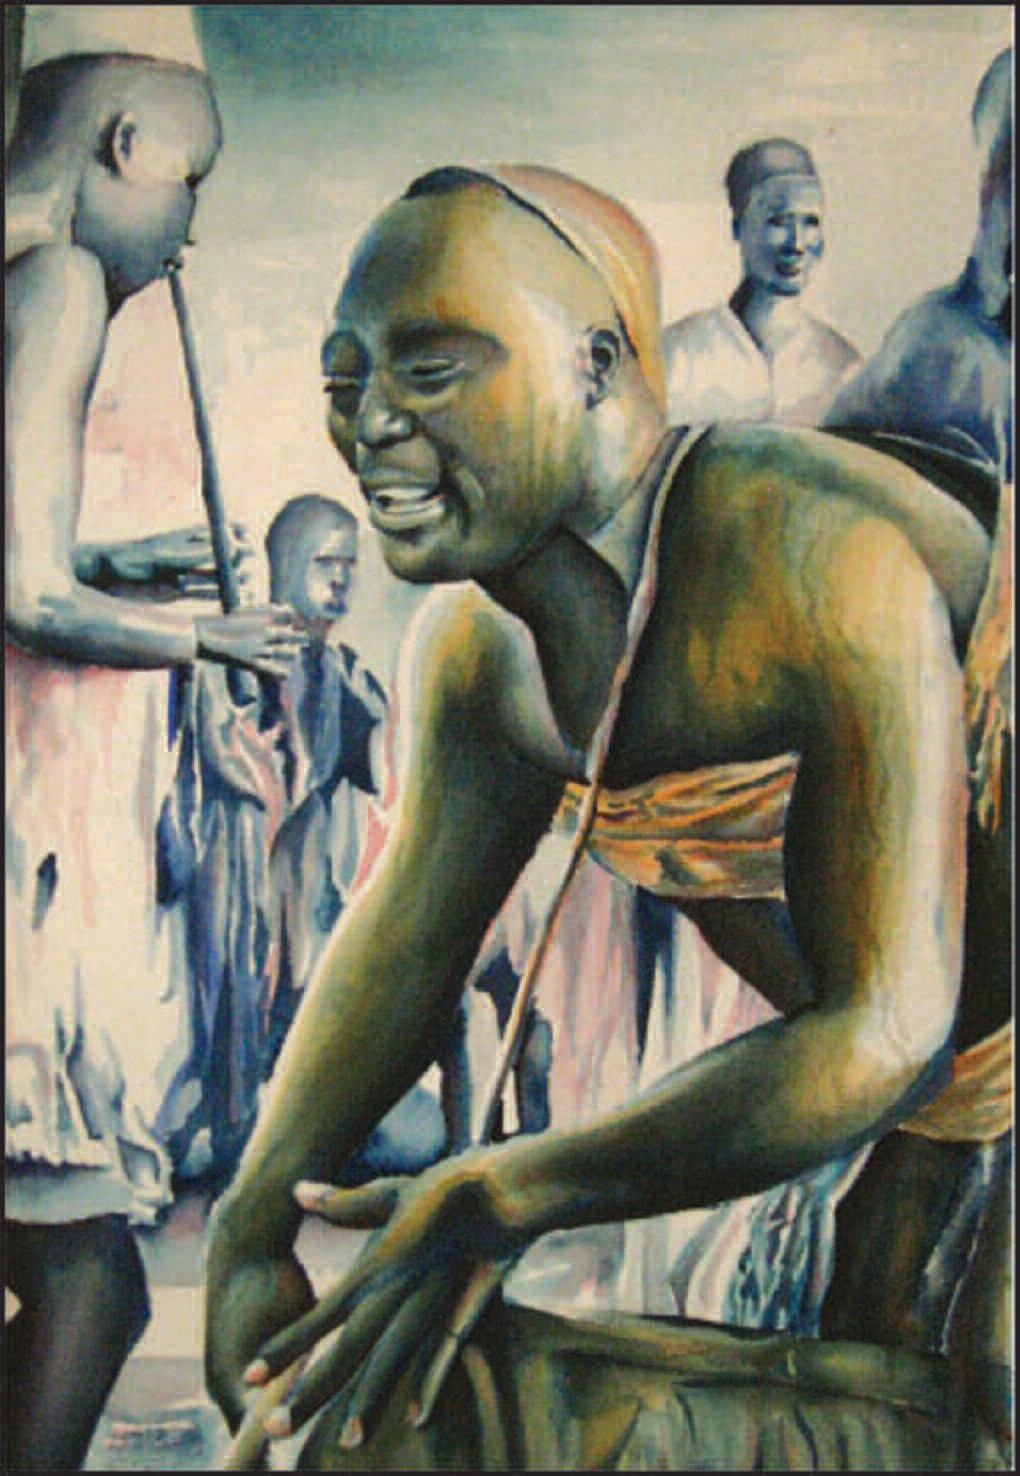 """African Rhythm"", by Taylor Mackie, a student at Savannah Arts Academy, was awarded Best of Show in the 2009 New Beginnings youth art exhibition. This year's exhibition is on display Feb. 8 through 26."